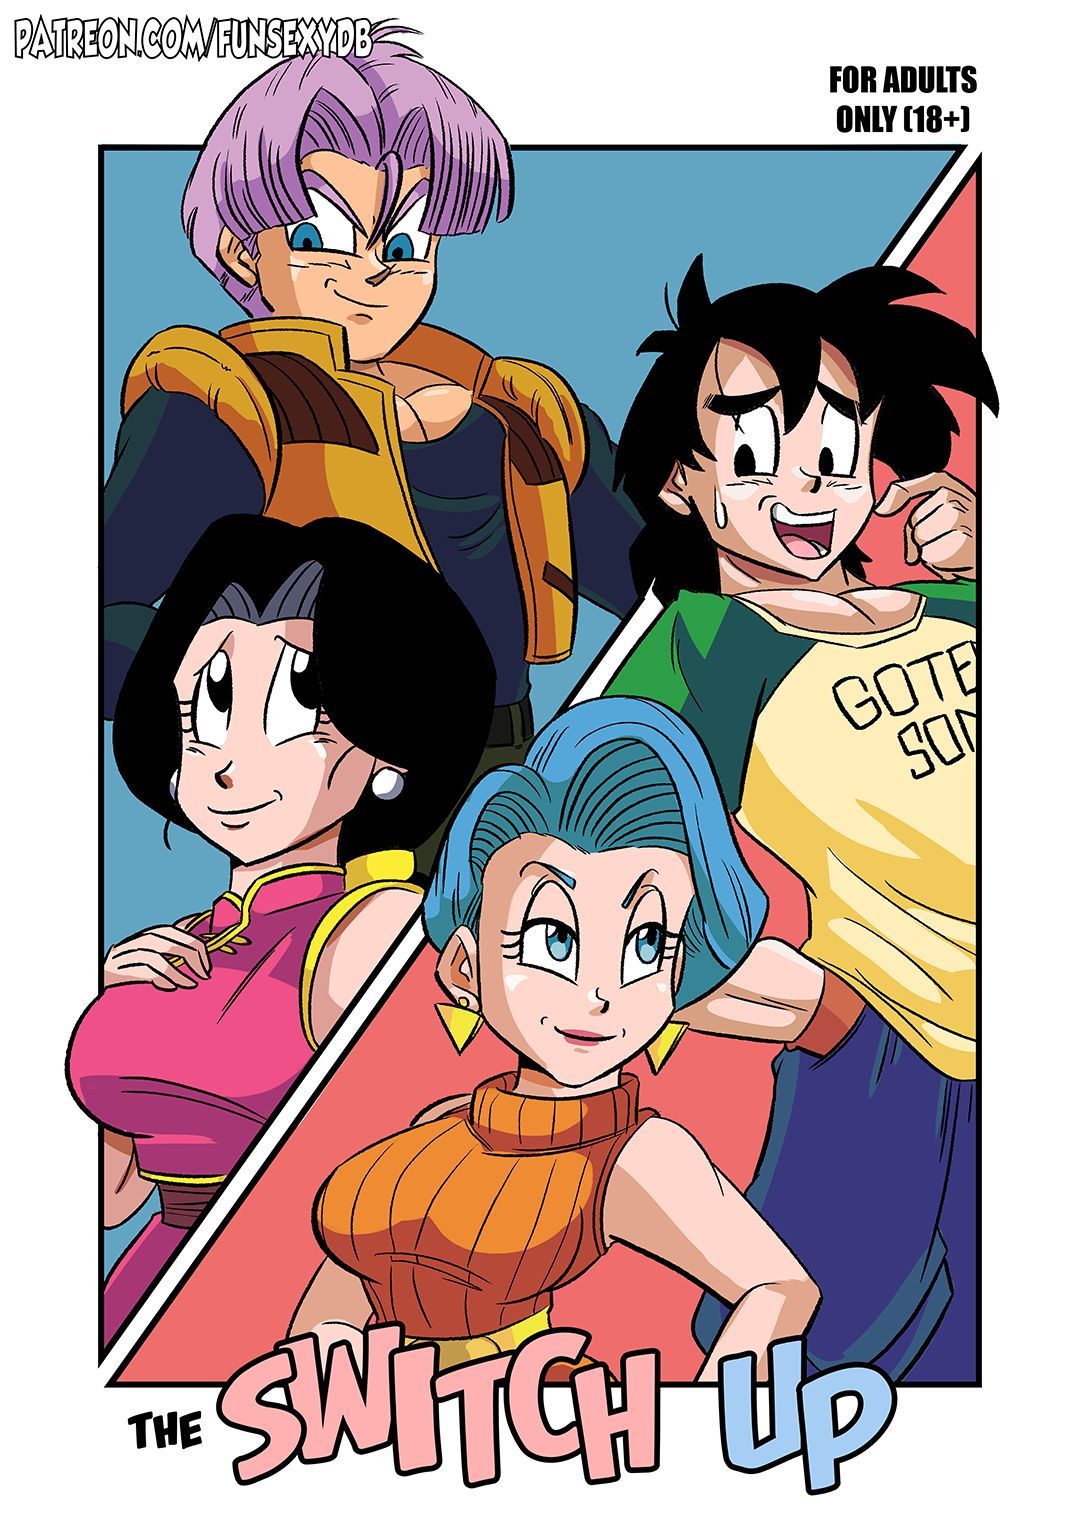 The Switch Up (Dragon Ball Z)